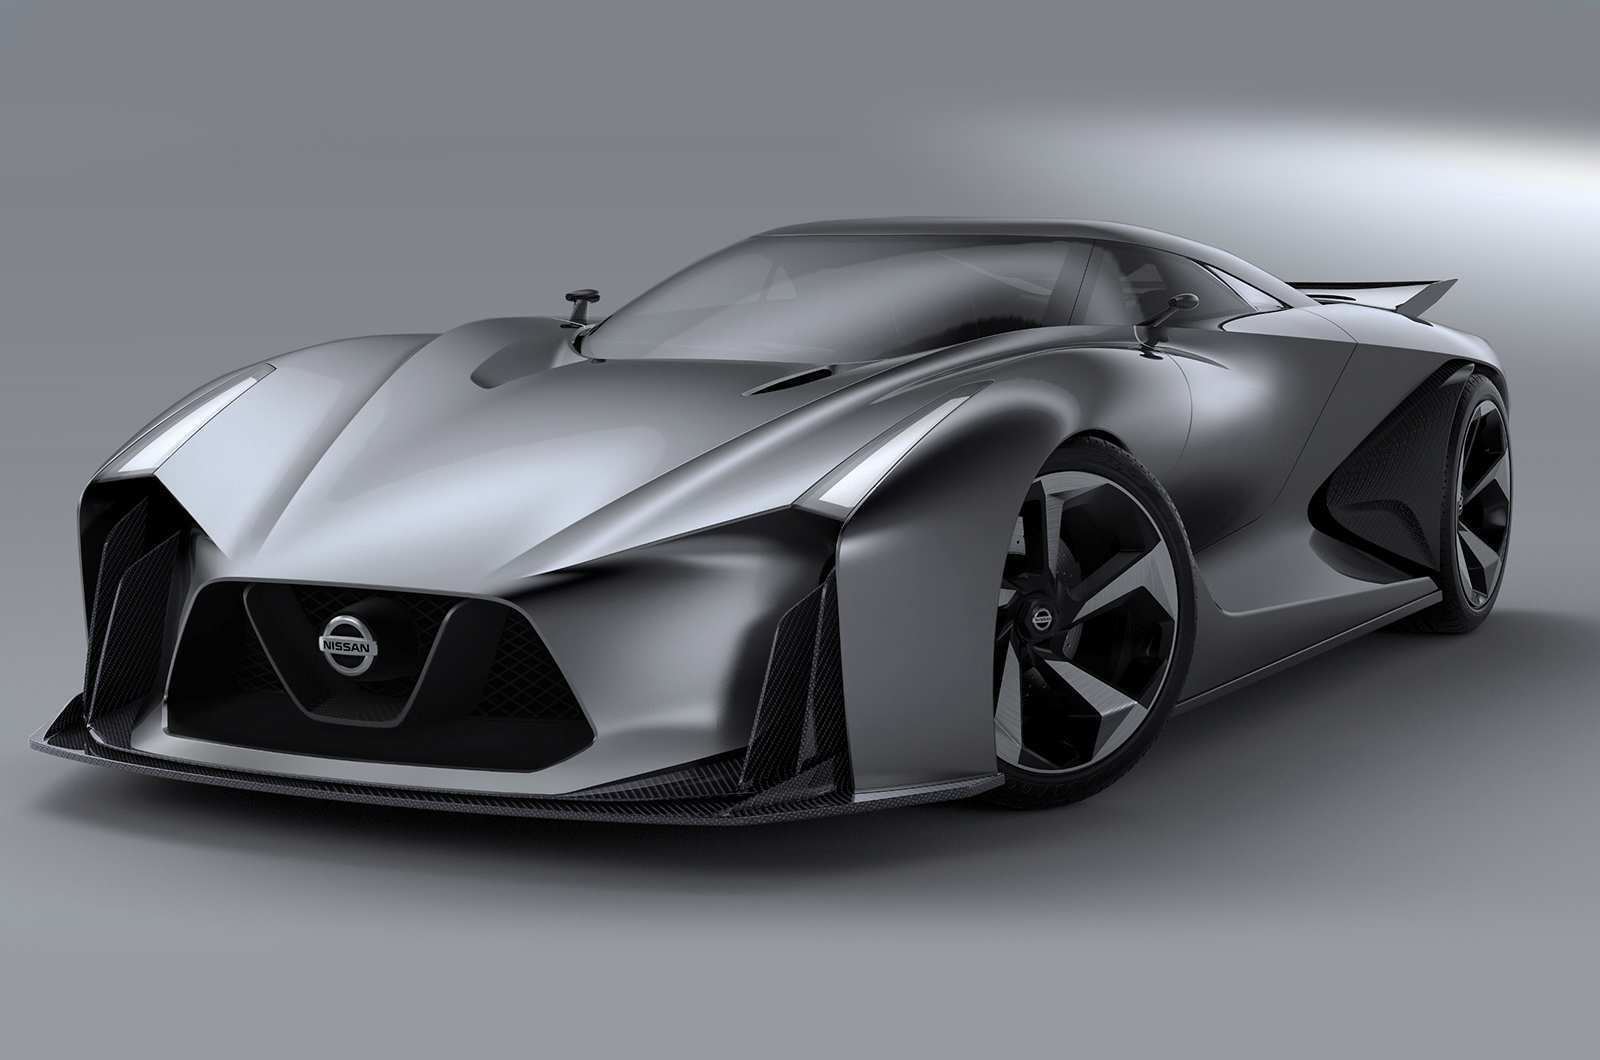 74 All New Nissan 2020 Vision Gt Interior for Nissan 2020 Vision Gt